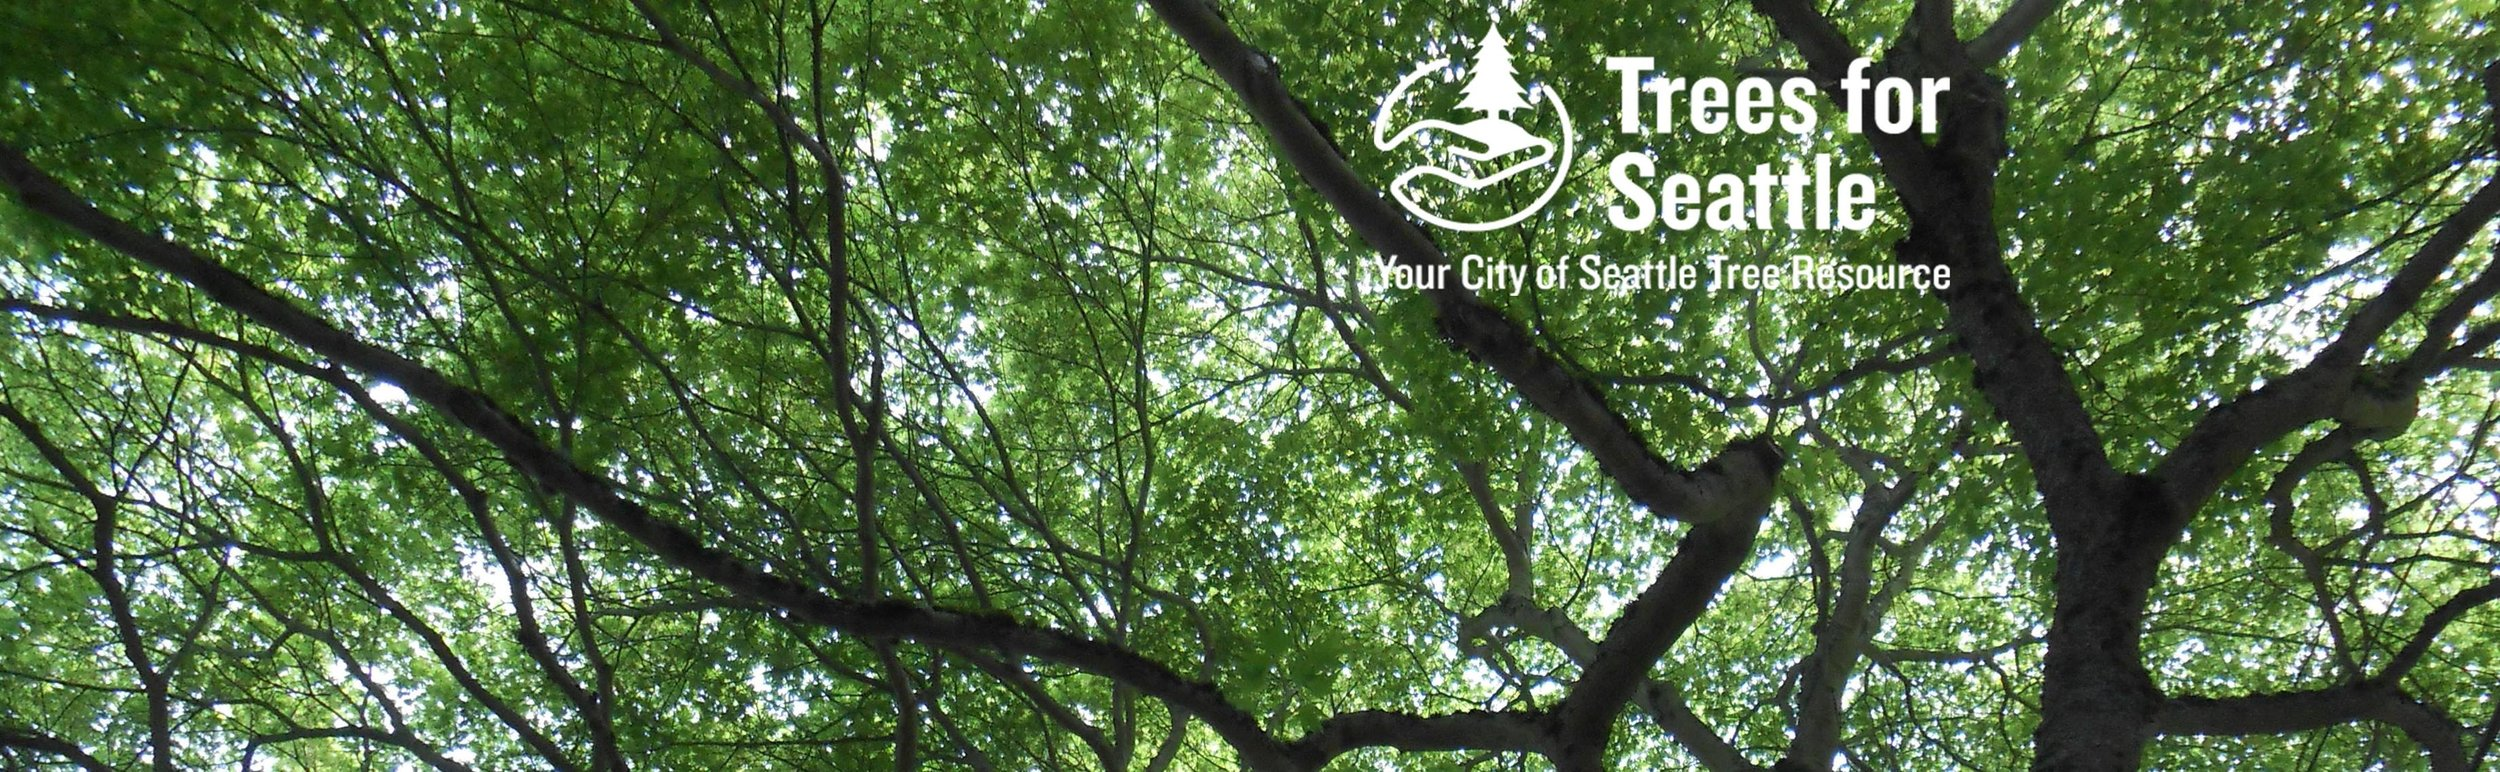 Trees for Seattle  is the urban forestry task force for the City of Seattle.   |   Image via  Trees for Seattle .